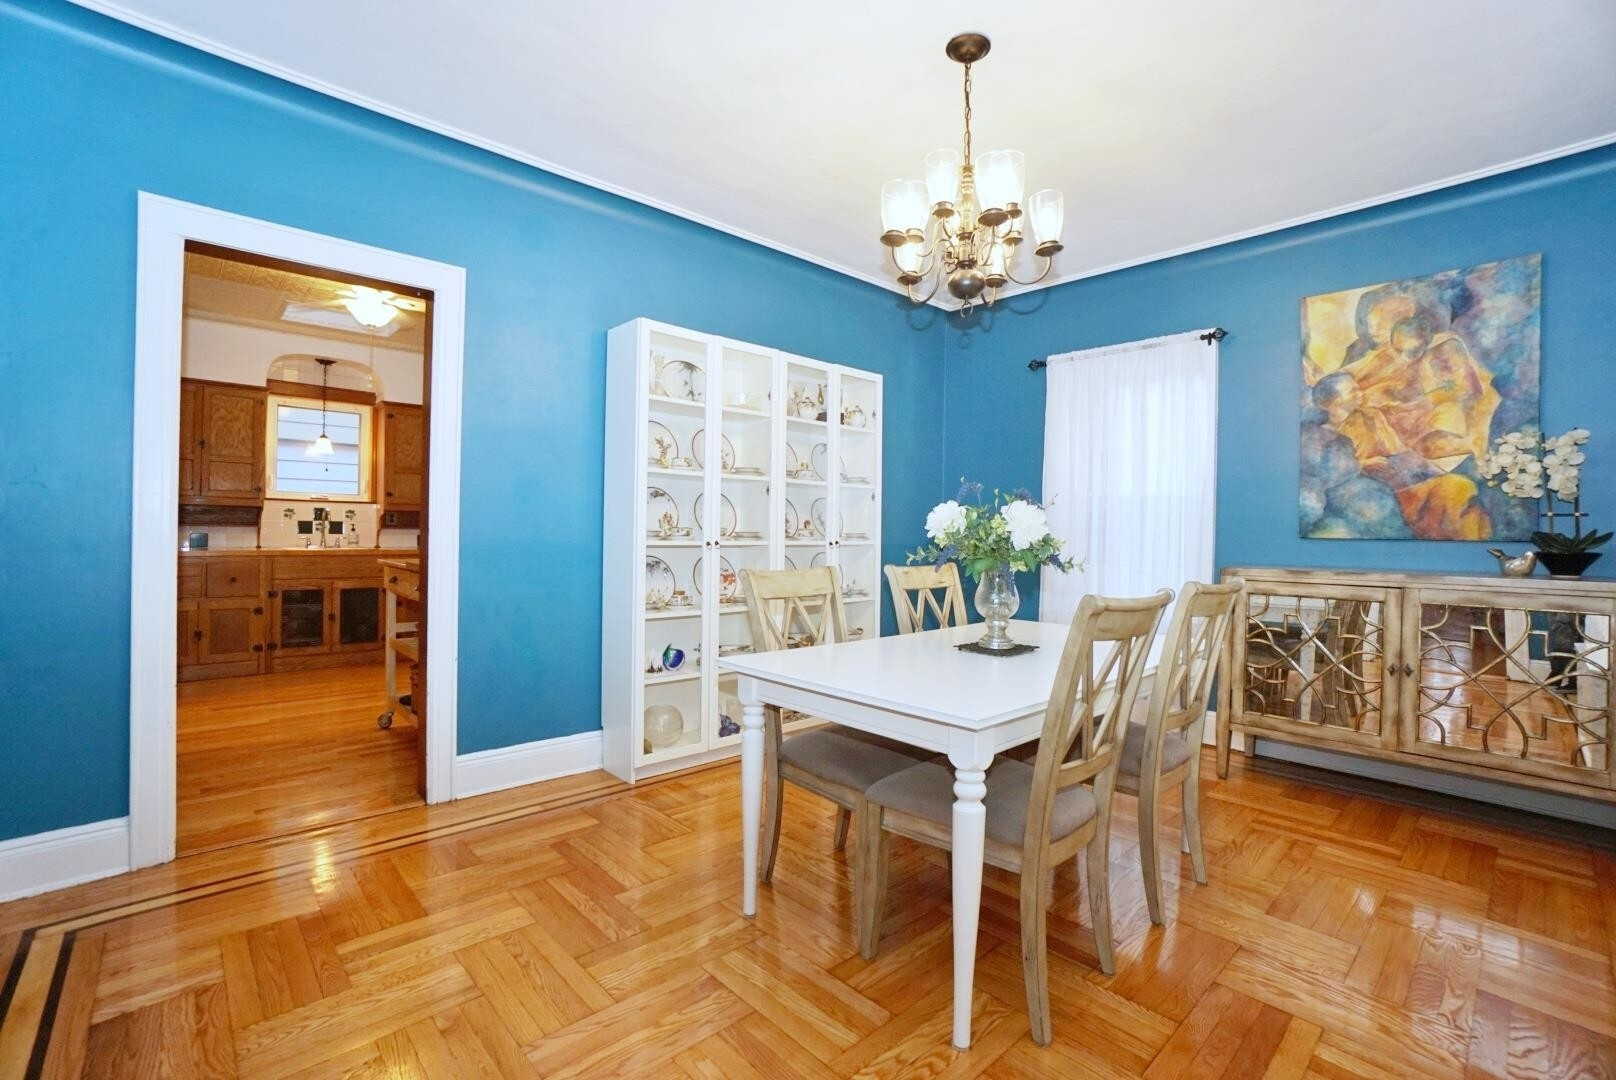 4. Single Family Townhouse for Sale at 1684 RYDER ST , TOWNHOUSE Marine Park, Brooklyn, NY 11234